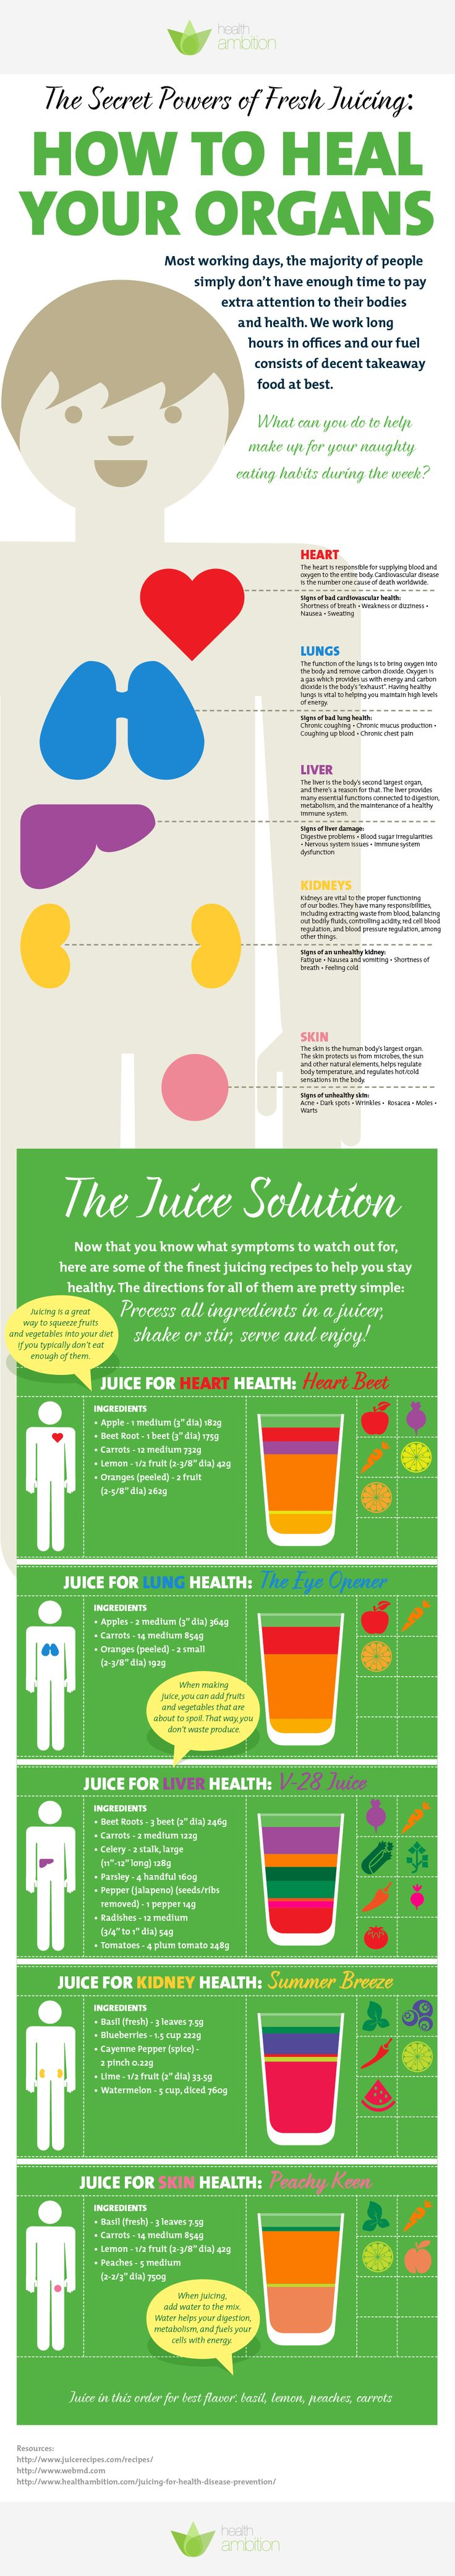 How To Heal Your Organs w/ The Secret Powers of Fresh Juicing FREE Printable!